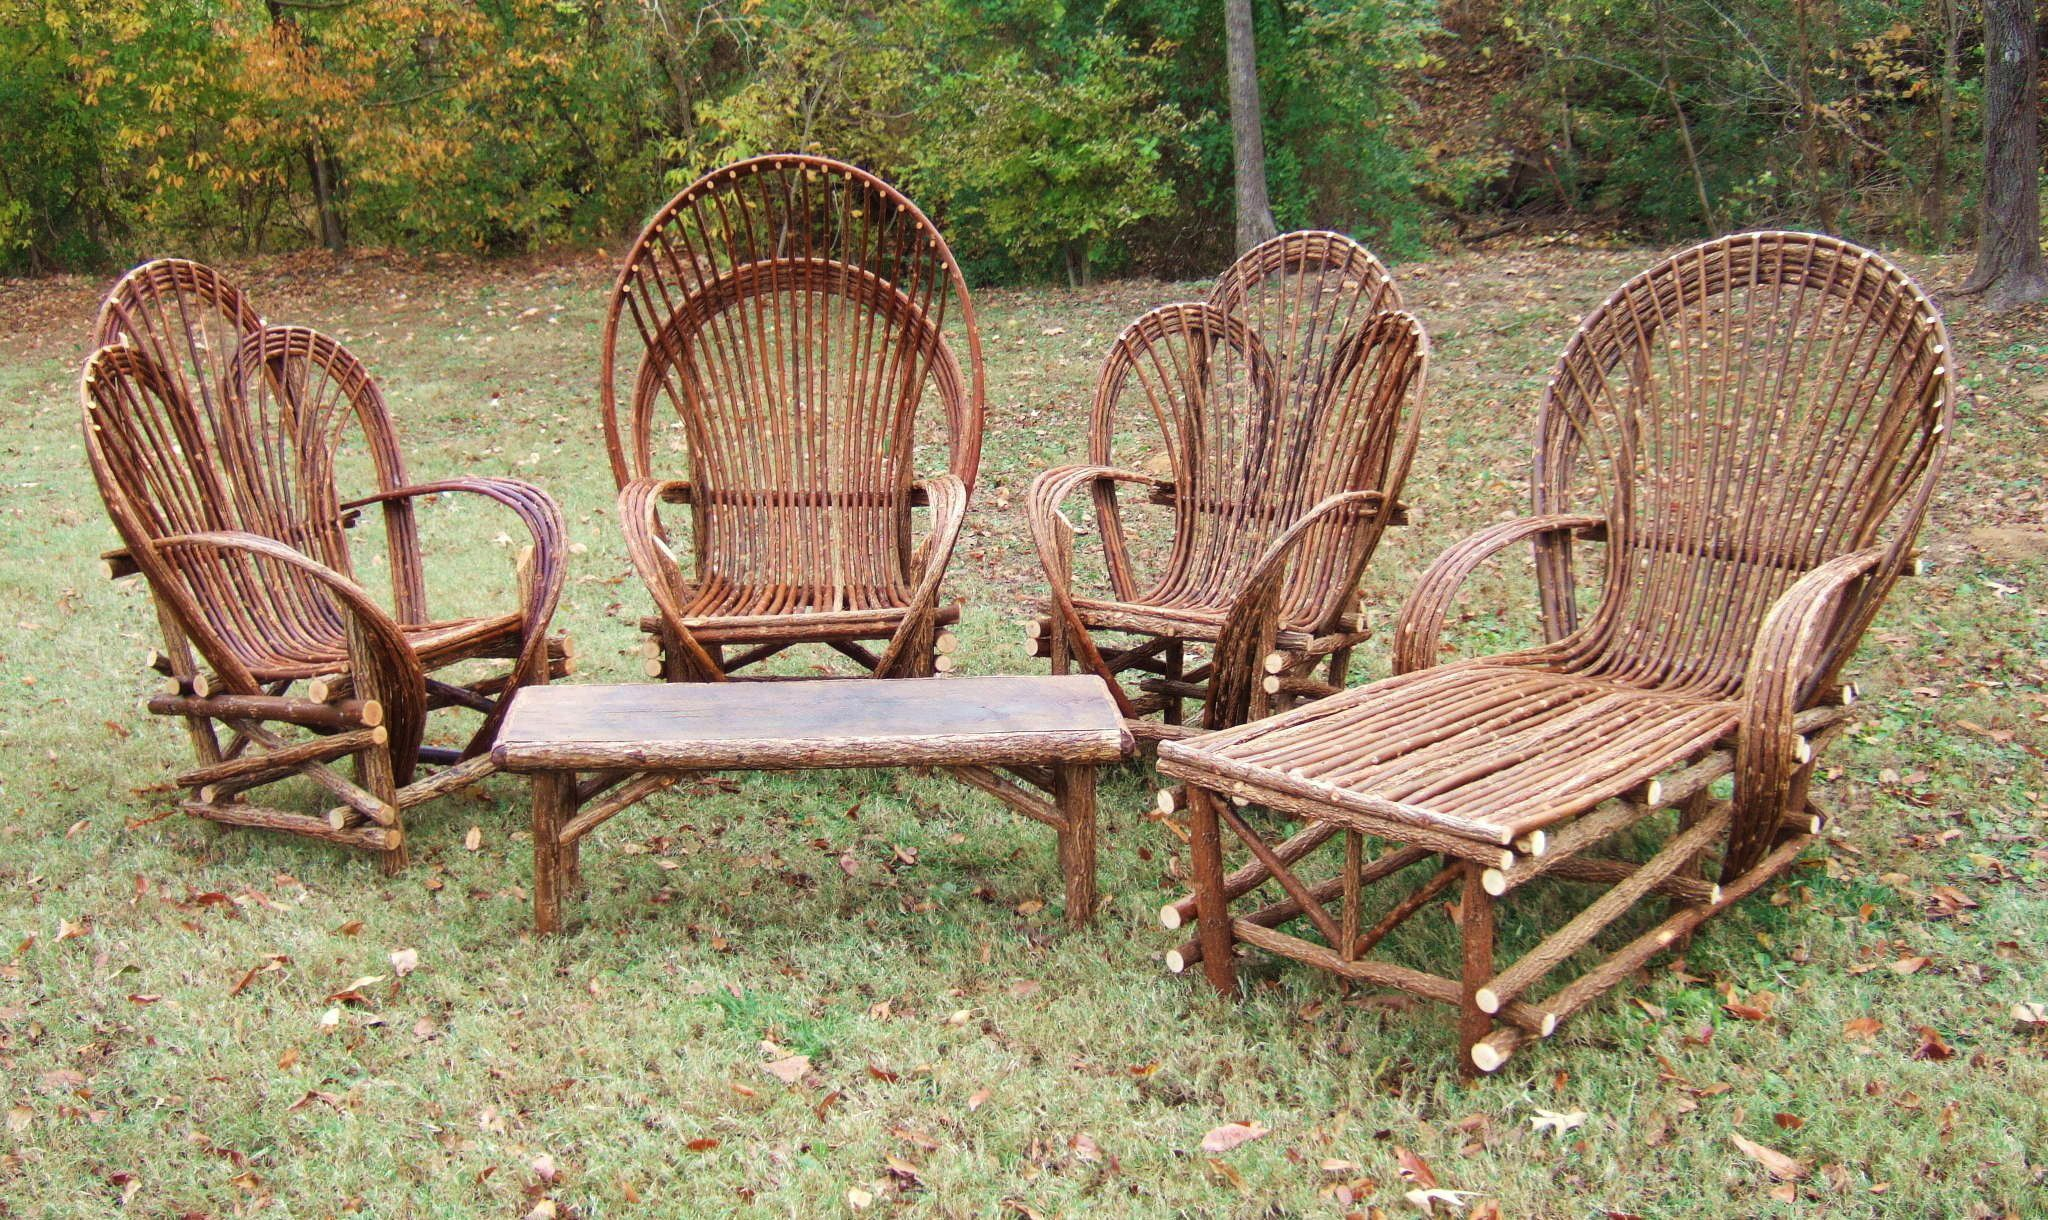 Tree Branch Rocking Chair Restoration Hardware Cushions This Is The Willow Furniture That My Grandpa Builds He